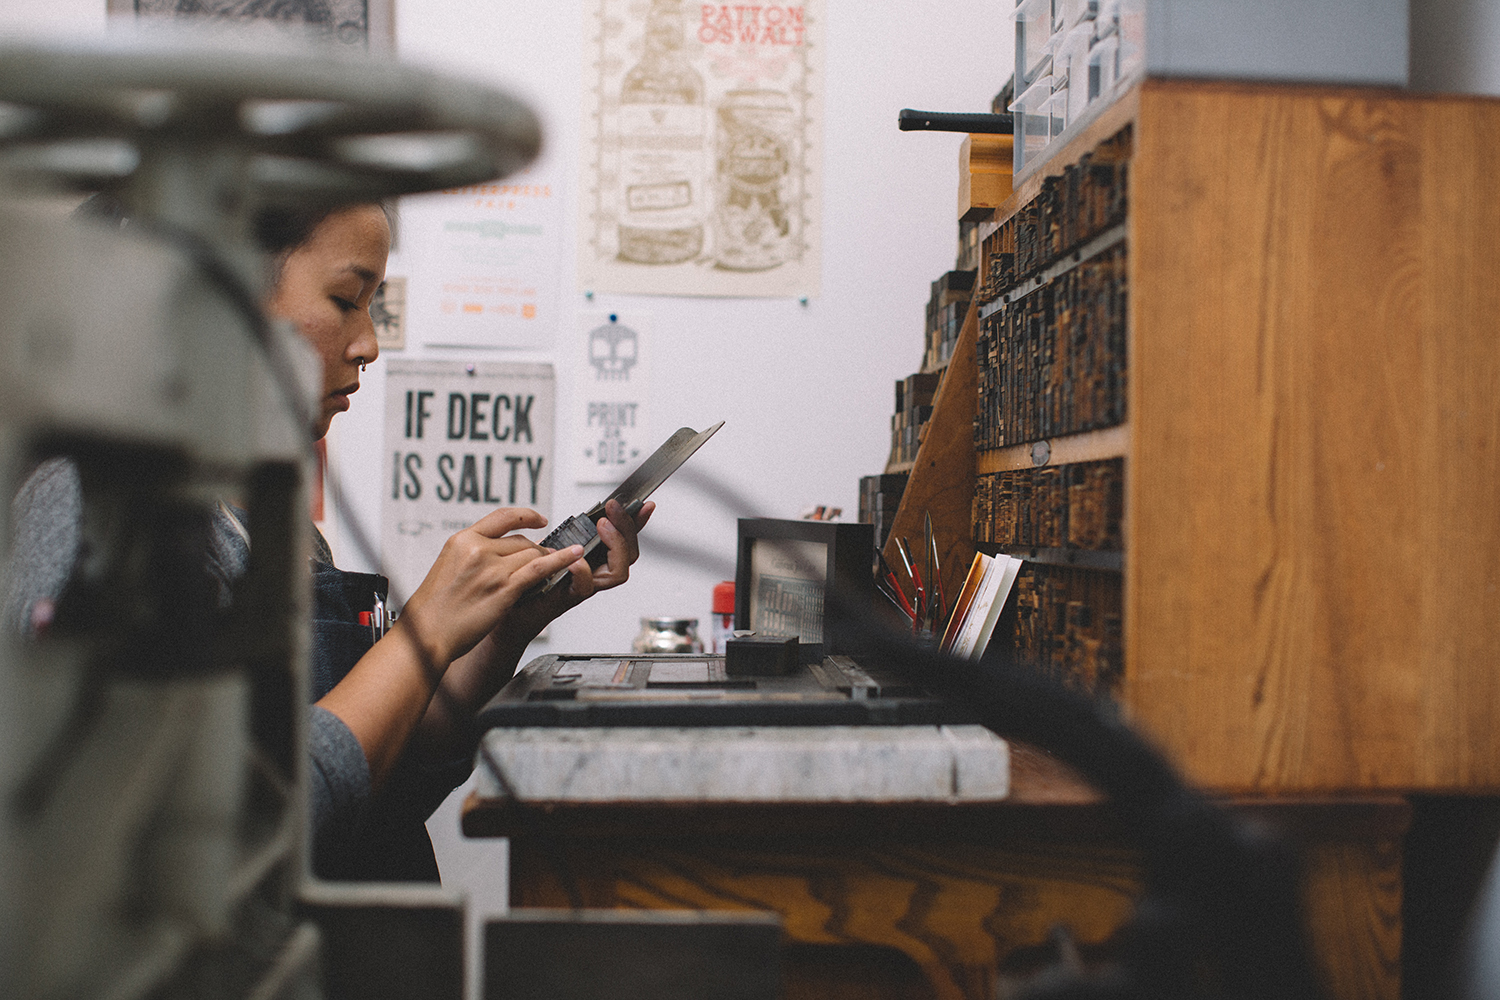 Meet the Maker - Cherish Prado badass letterpress wizardCherish, a letterpress printer by trade, is the boss lady behind this little letterpress print shop. She resided for a decade in the Pacific Northwest where she honed in on her craft. In Honolulu you can catch her enjoying a good cuppa, checking out the latest art exhibits and films, biking around town, or in her backyard tending to her plants and pups.